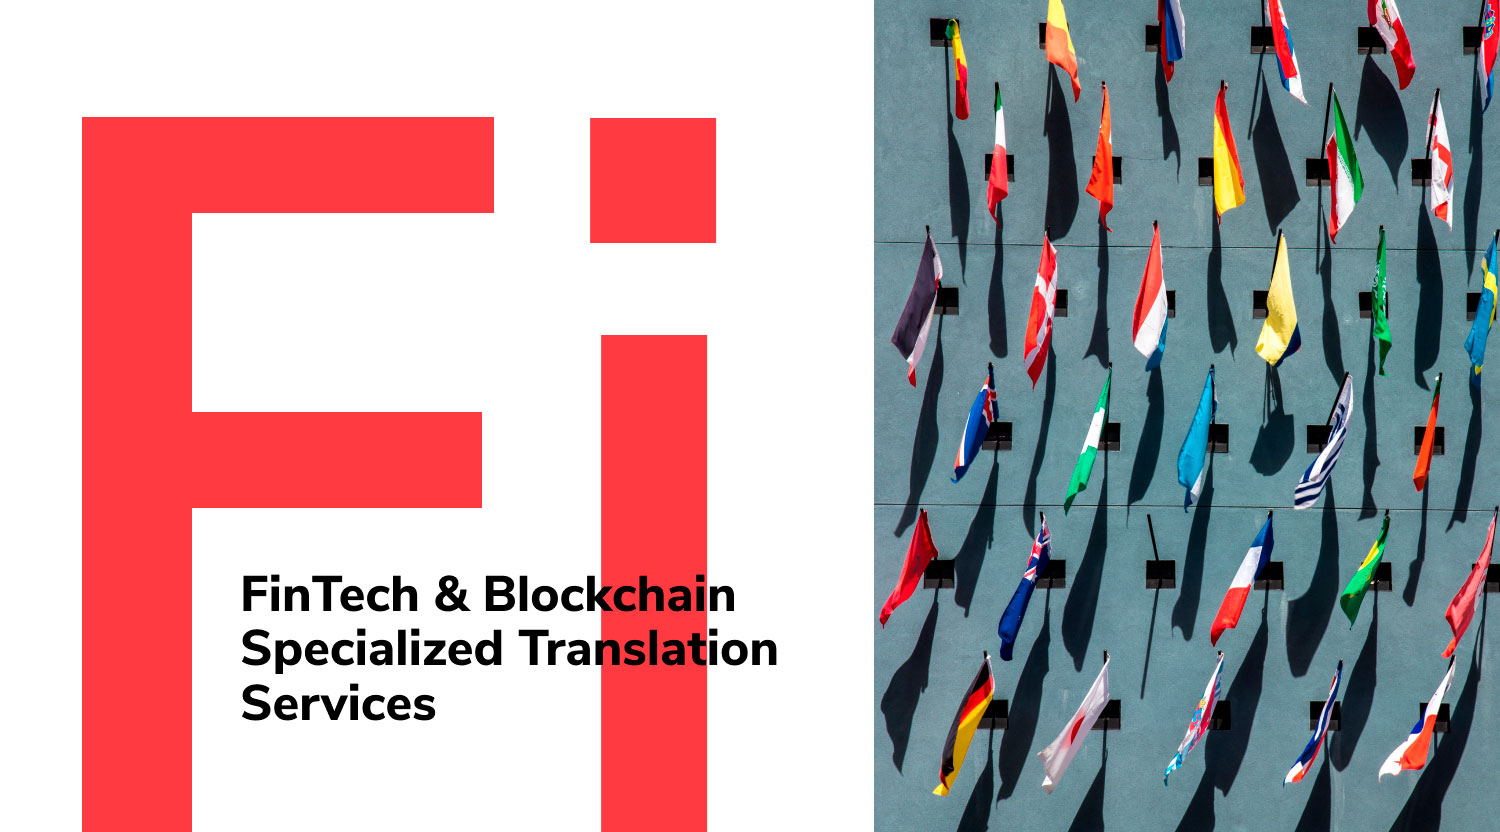 PolyTranslate - Professional translation agency specialising in FinTech & Blockchain